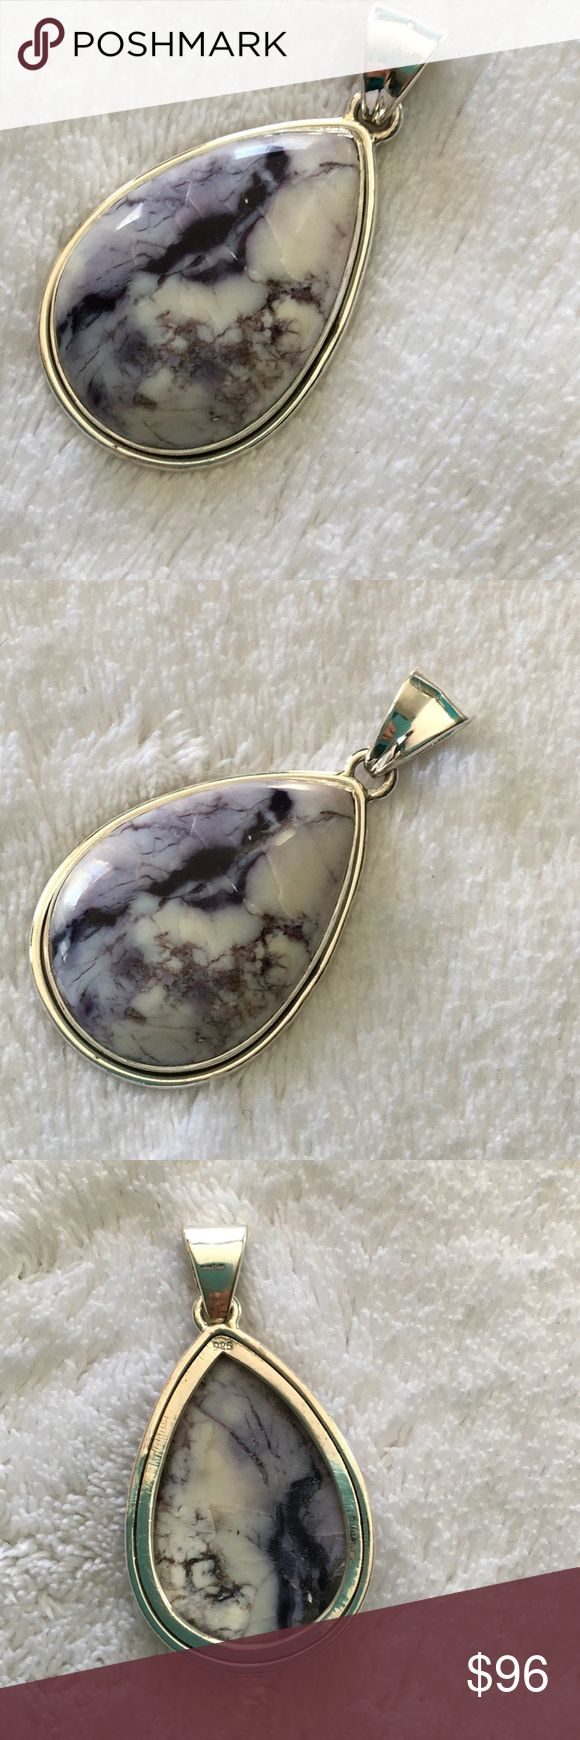 Tiffany Stone Pendant (B) in .925 silver Rare stone  - opalized bertrandite fluorite - also known as Tiffany Stone.  A variety of Fluorite specially from Utah. Large tear drop shaped  Pendant - exhibits many of the minerals associated typically with Tiffany Stone- white to pale to dark purple - set in .925 silver.  Stone description- A fine-grained purple to pale violet fluorite, usually with swirl patterns sometimes with small impurities of intergrown bertrandite, chalcedony, opal, and/or…